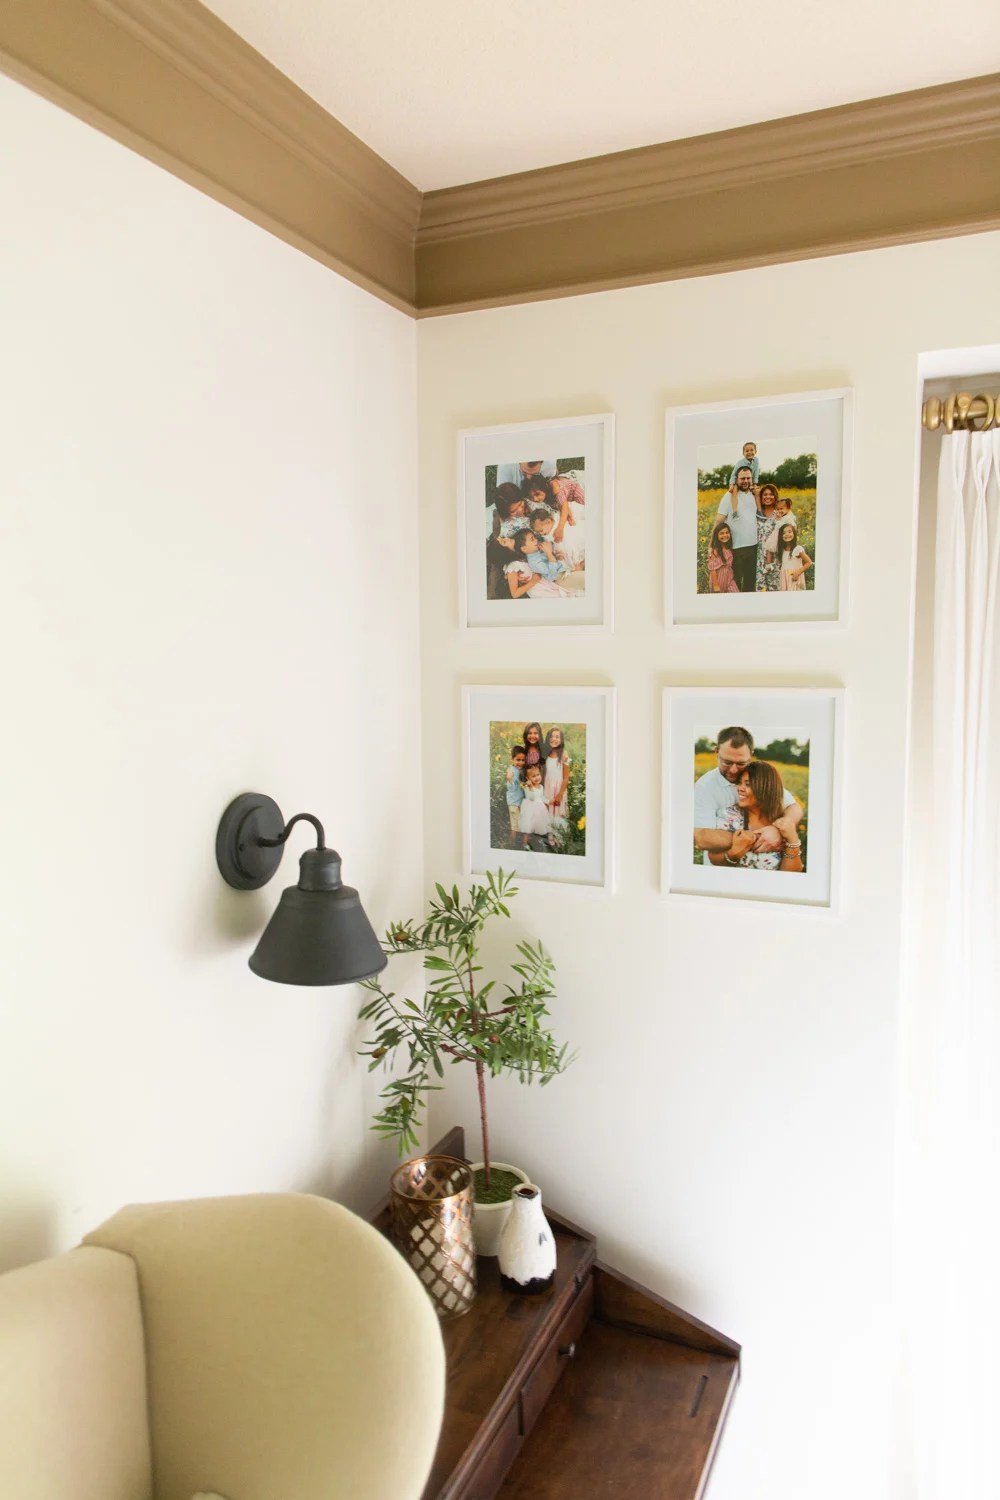 DIY Wall Sconce Lighting without Electricity or Power ... on Sconces No Electric Power id=56419